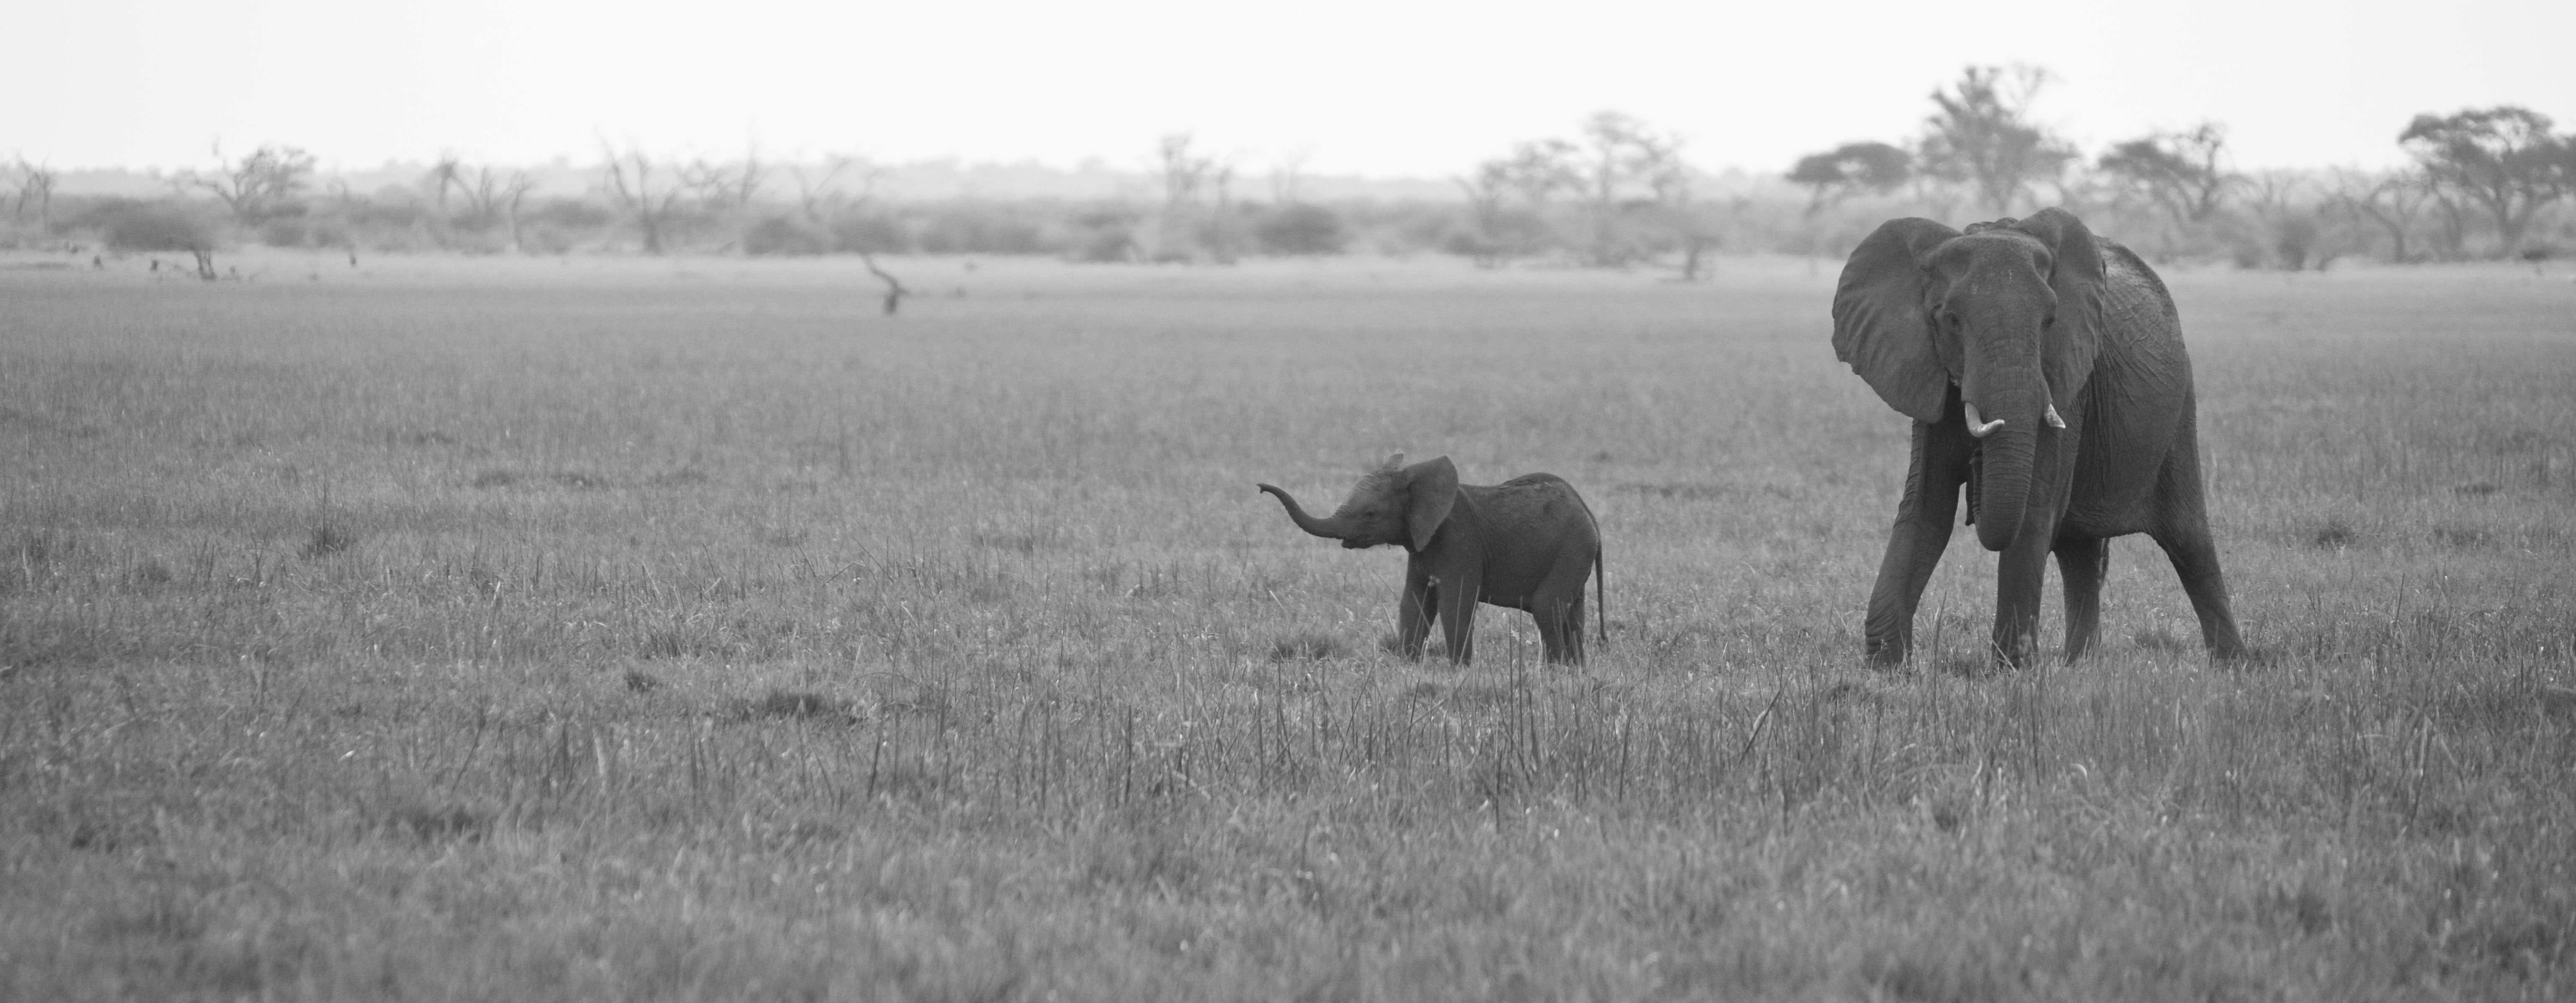 Elephant-Mother and Baby, BW ©Johannes Ratermann